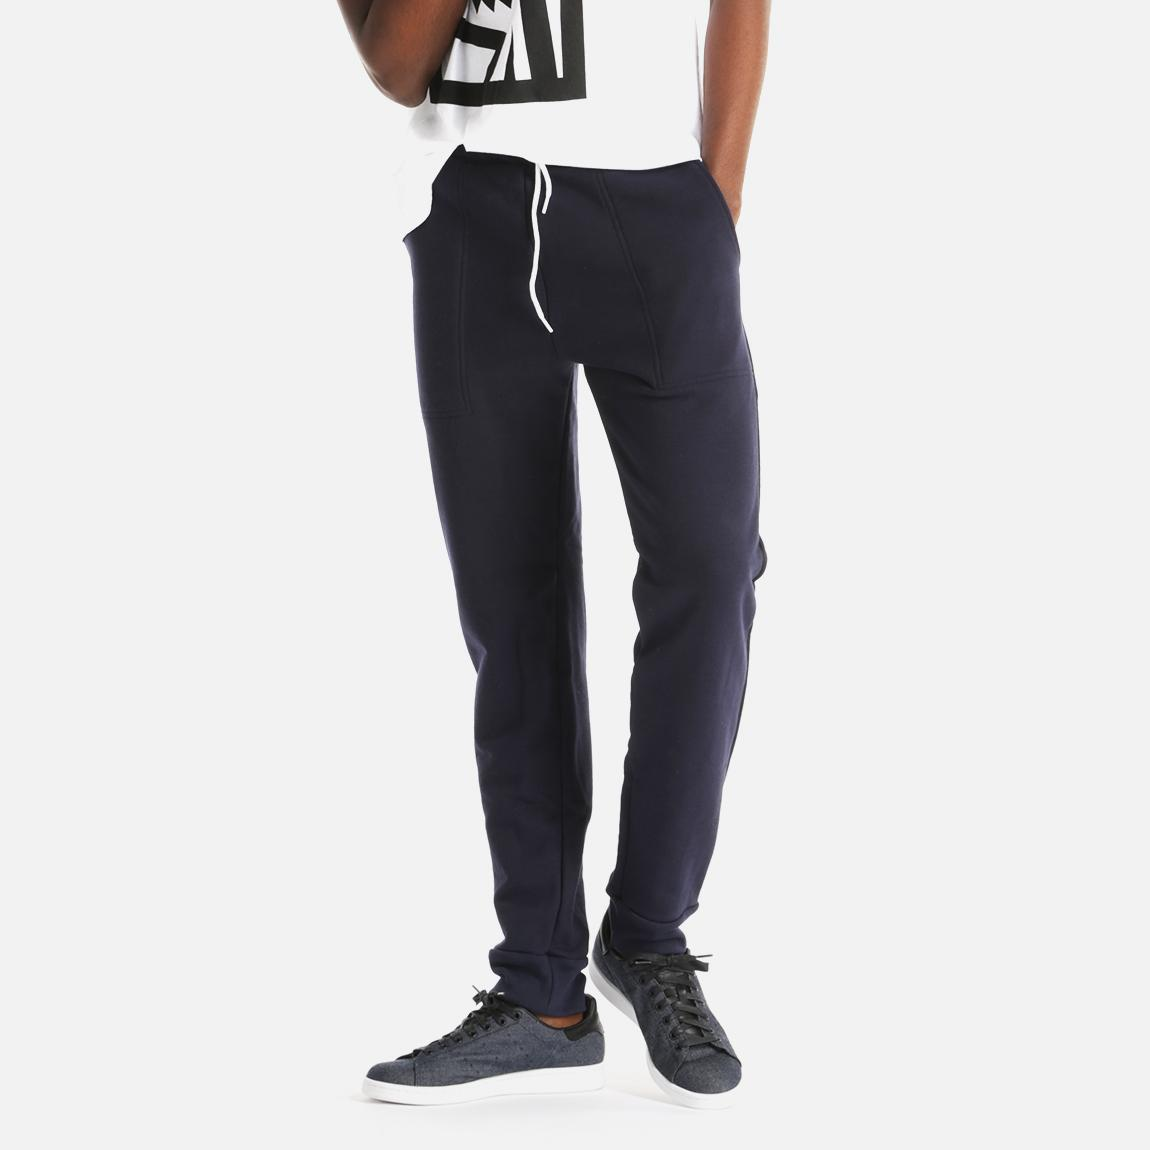 A new style to our Classic sweatpant! The cotton pant features an elastic waistband with drawstrings, side pockets, back right pocket and cuffed bottoms. Black Dog on solid metal button on back right pocket.